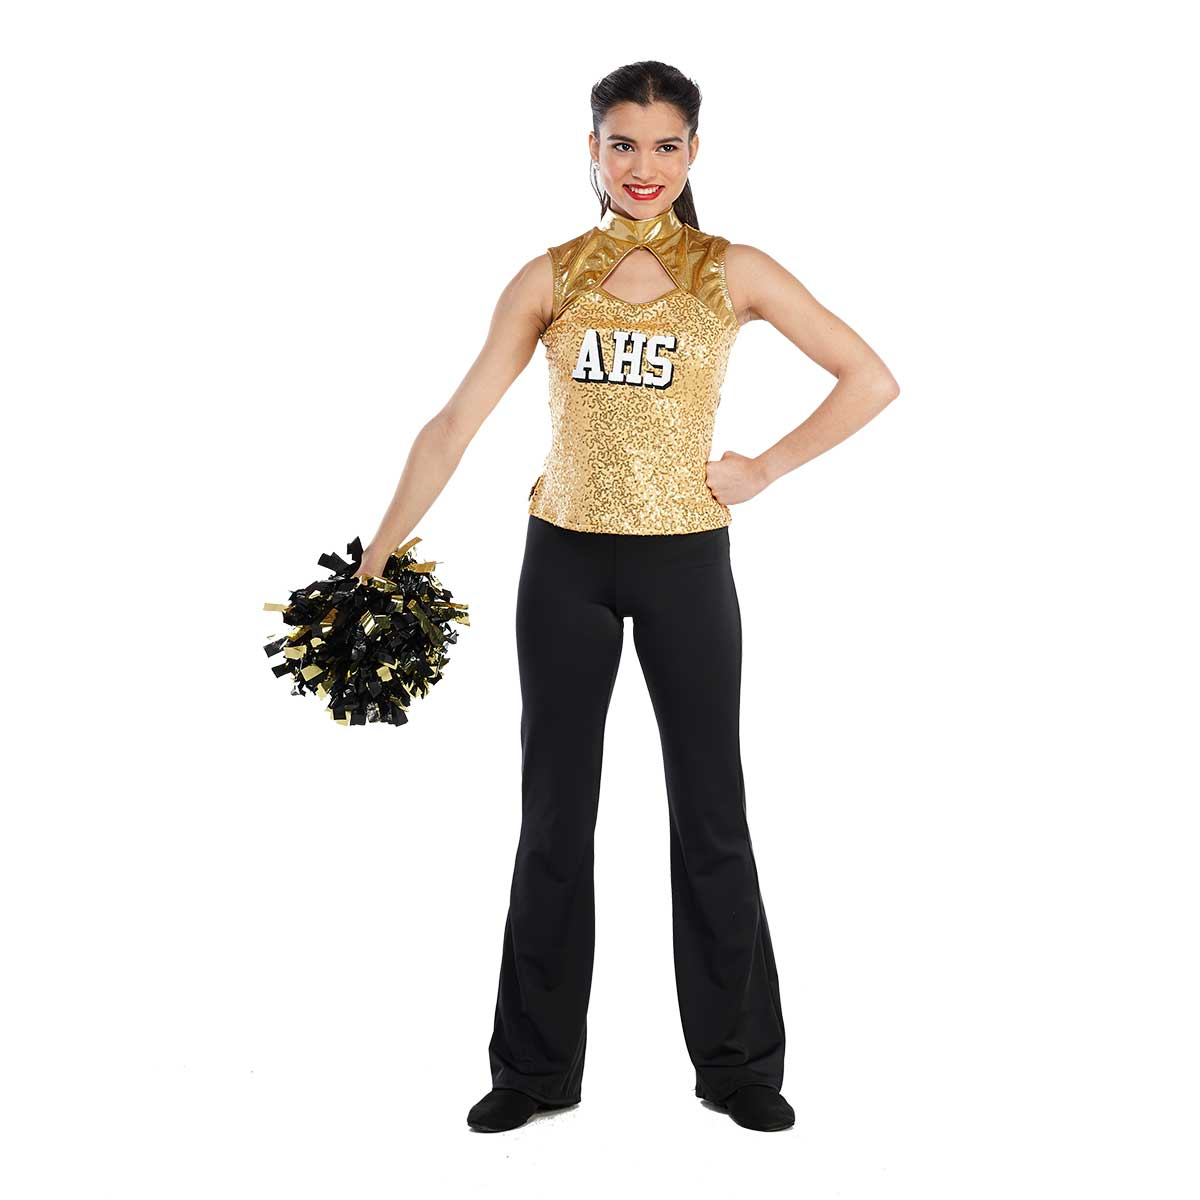 Guard Uniforms: Style 1905 Top